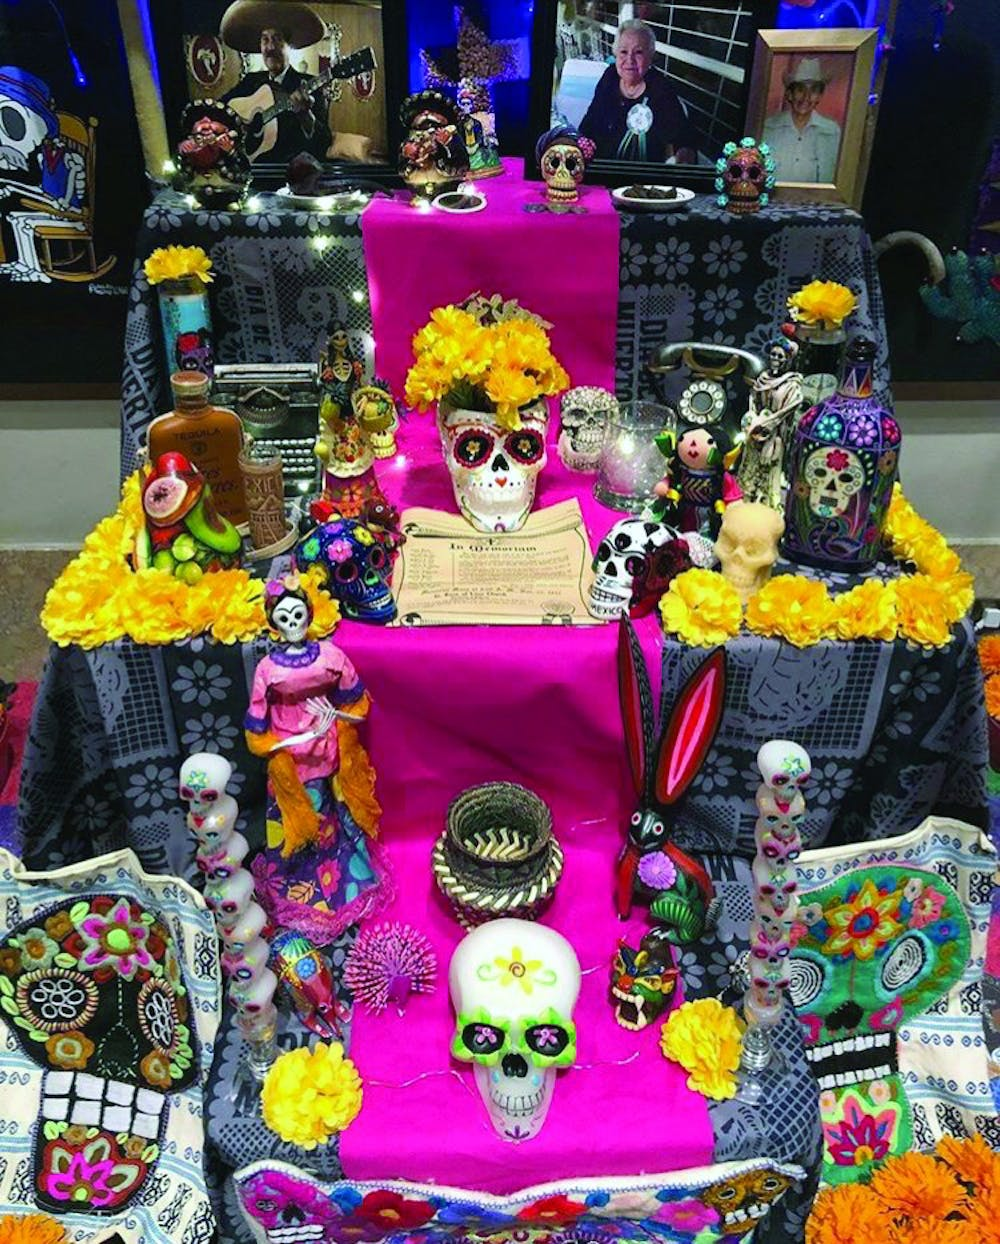 "<p>&nbsp;""Cruz Familia"" was the name of an Ofrenda displayed at the DIA exhibit commemorating loved ones who passed away.</p>"